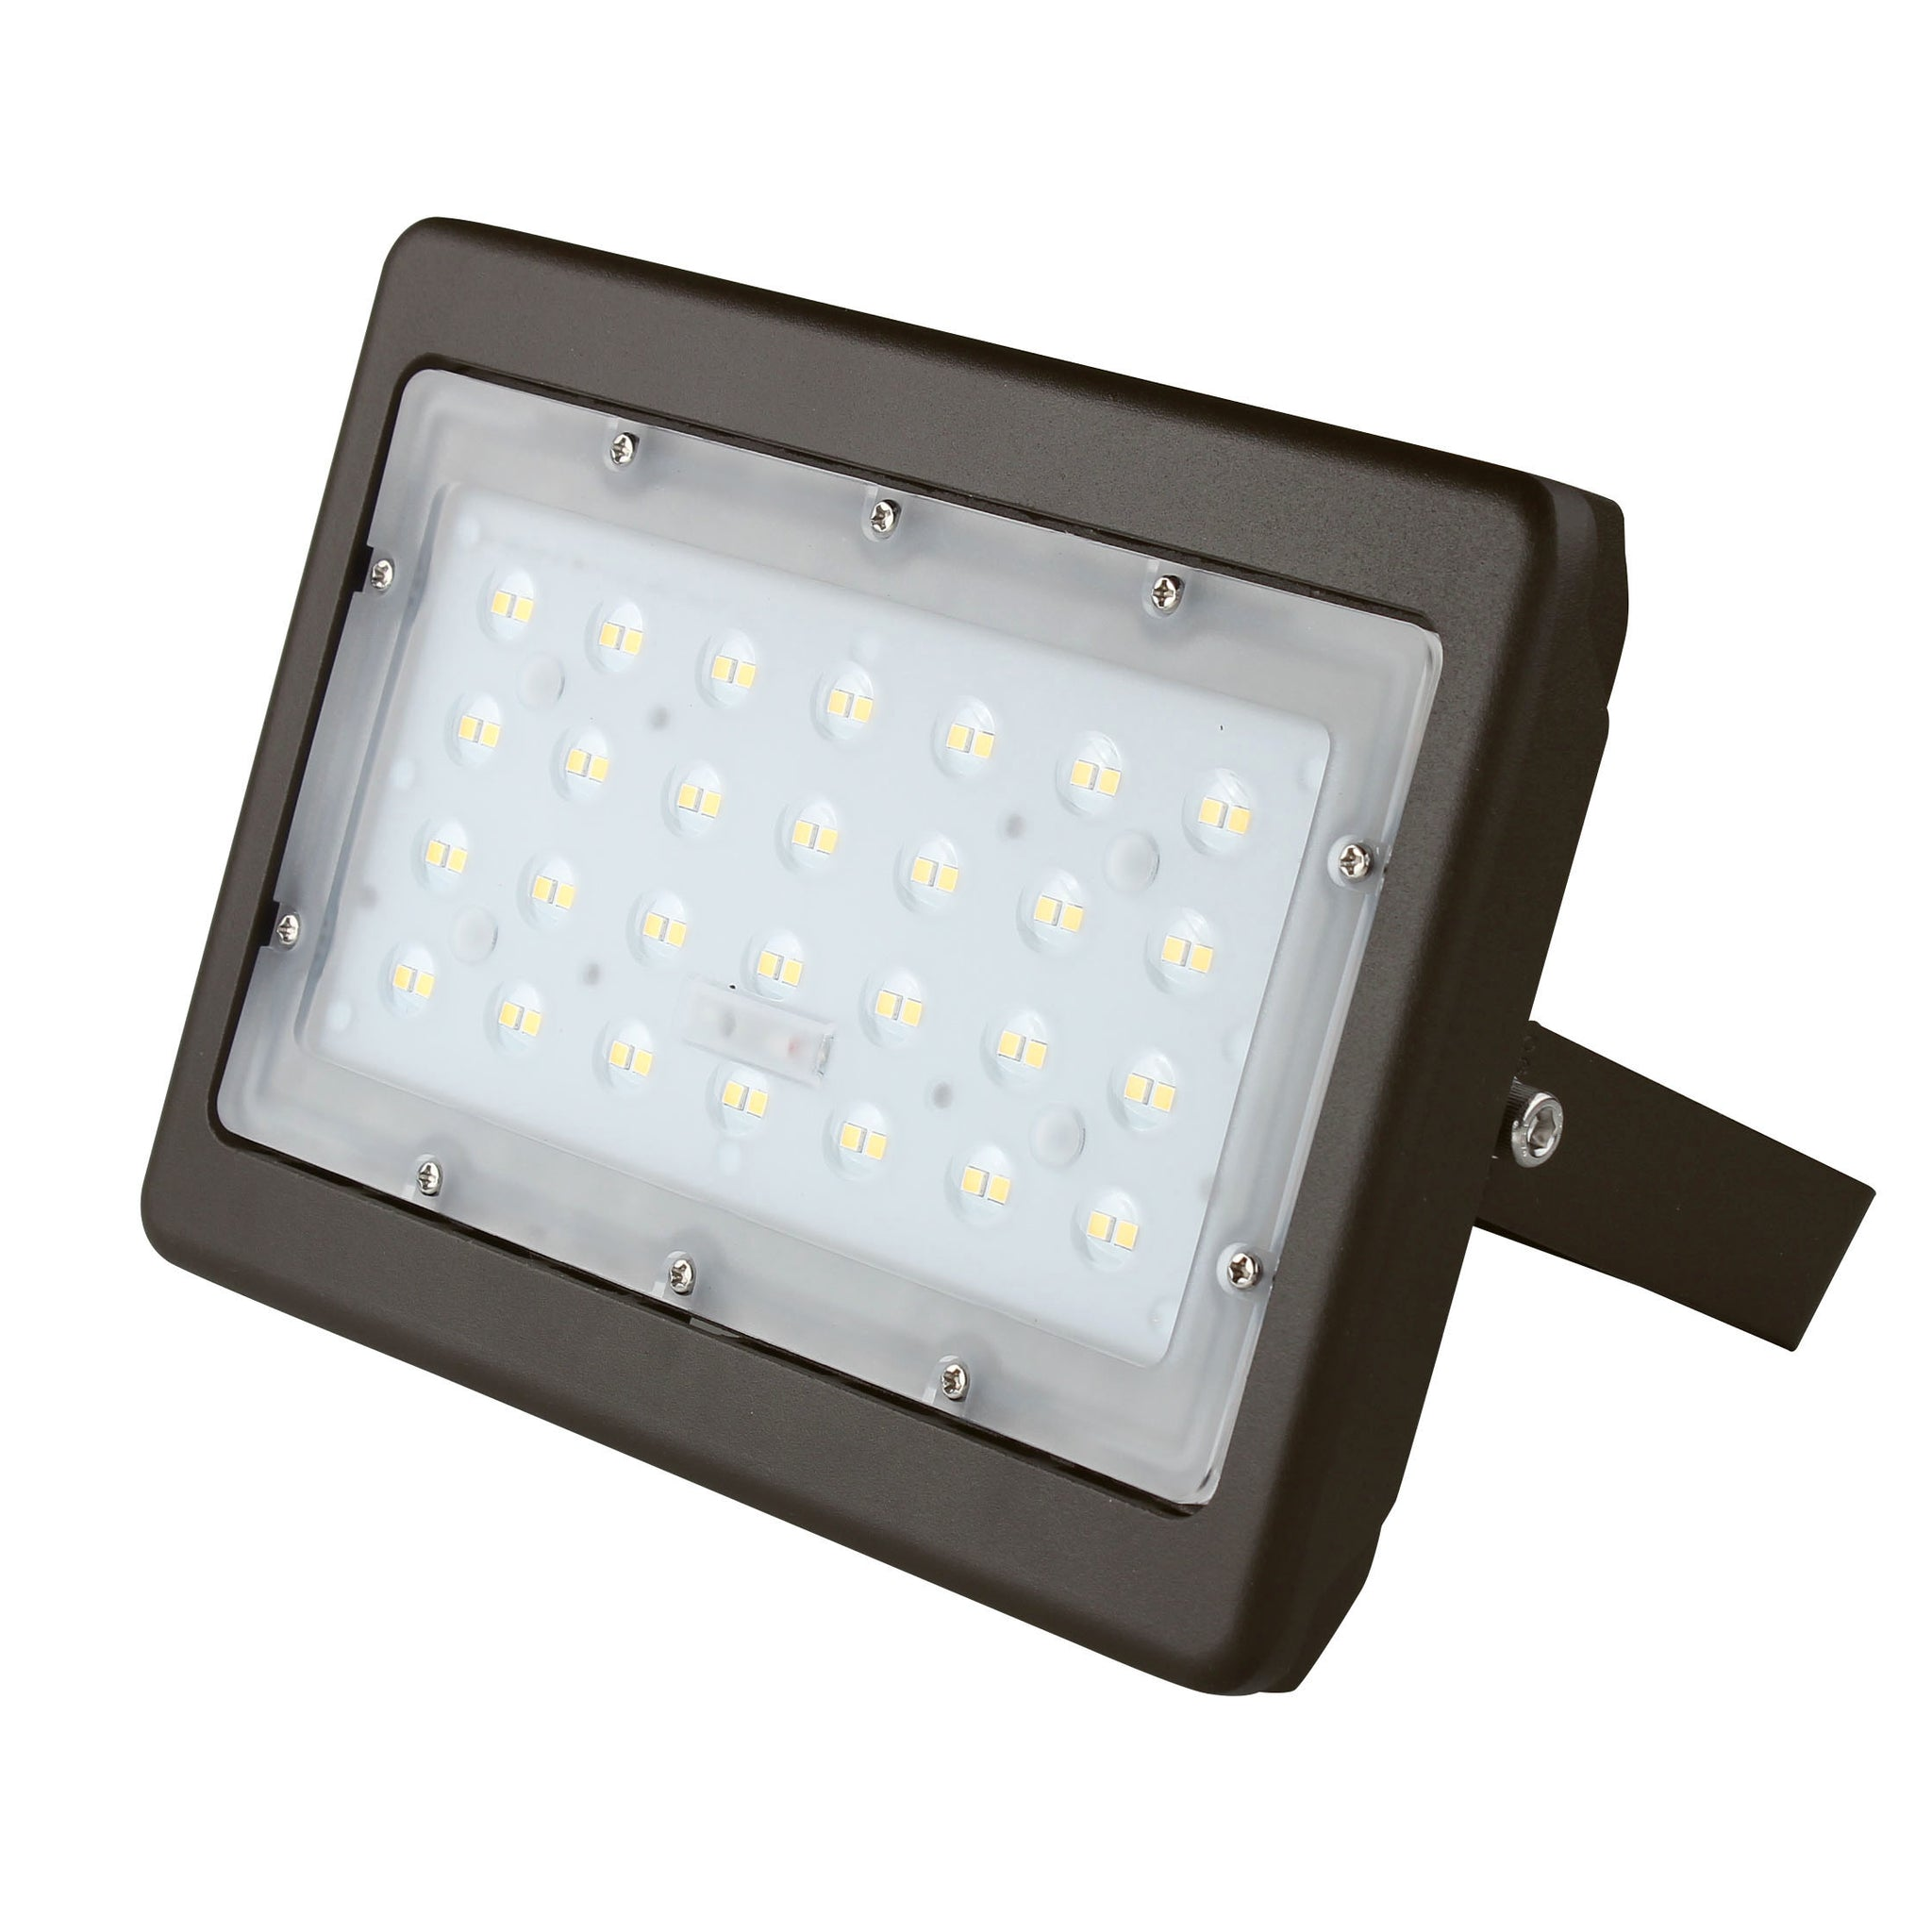 LED Area Light - 50 Watts - 5,800 Lm